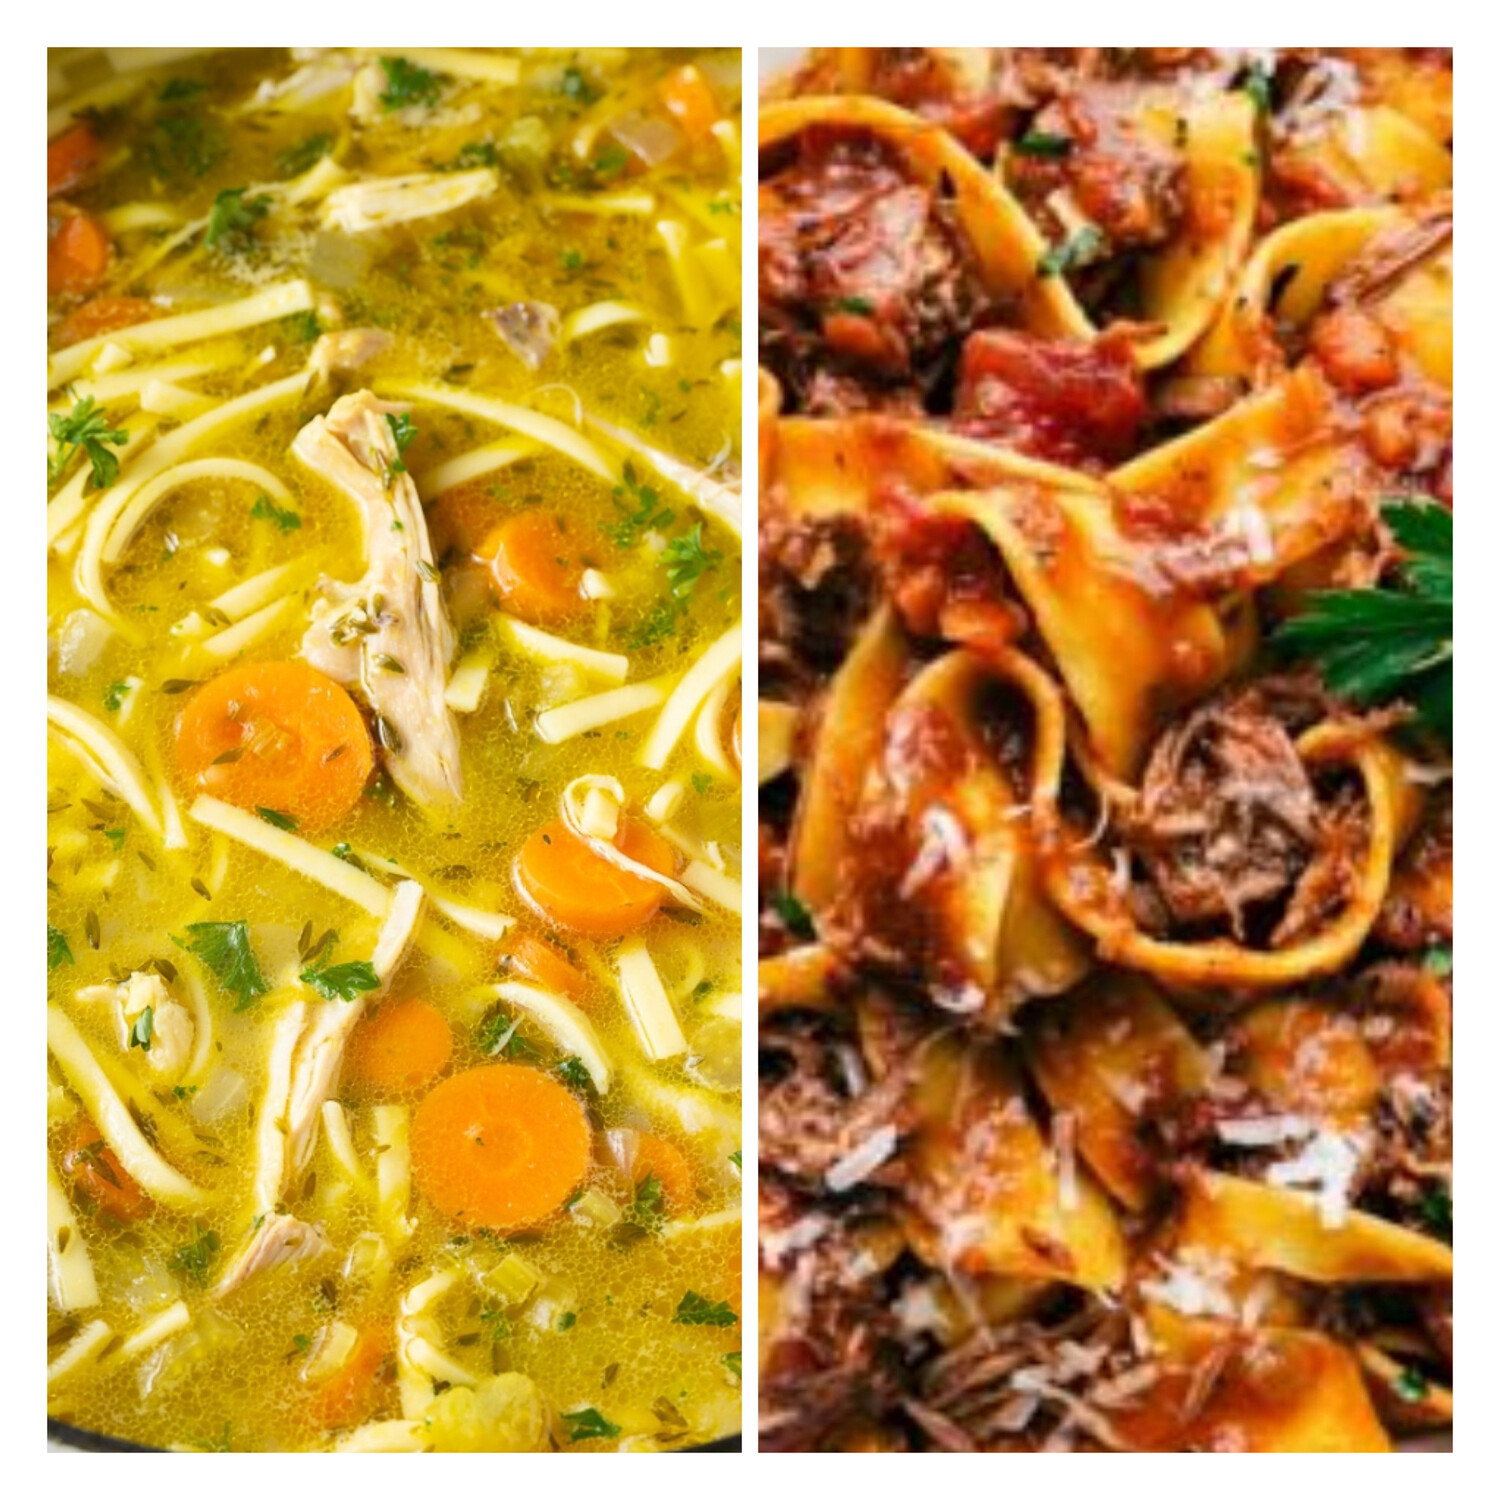 Beef Ragu Pappardelle Pasta & Chicken Noodle Soup